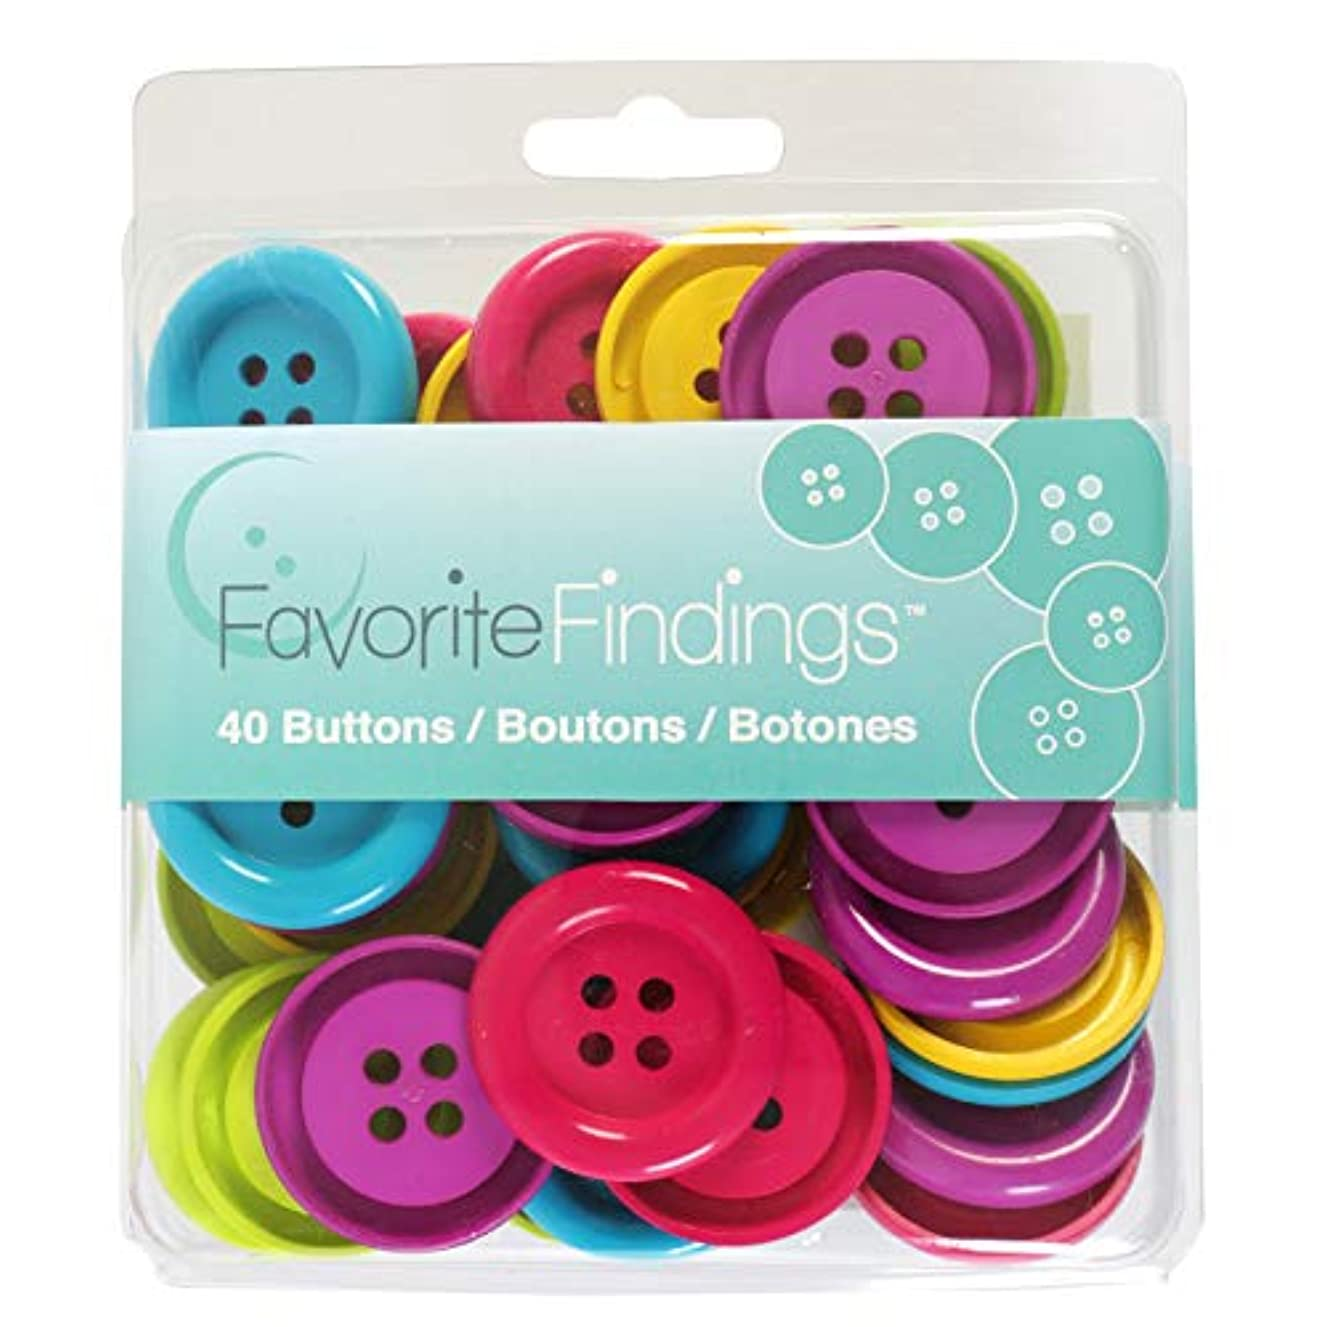 Blumenthal Lansing 4000174 40pc Favorite Findings Assorted Craft and Sewing Buttons, Purple, Red, Blue, Green, and Yellow, 40 Piece